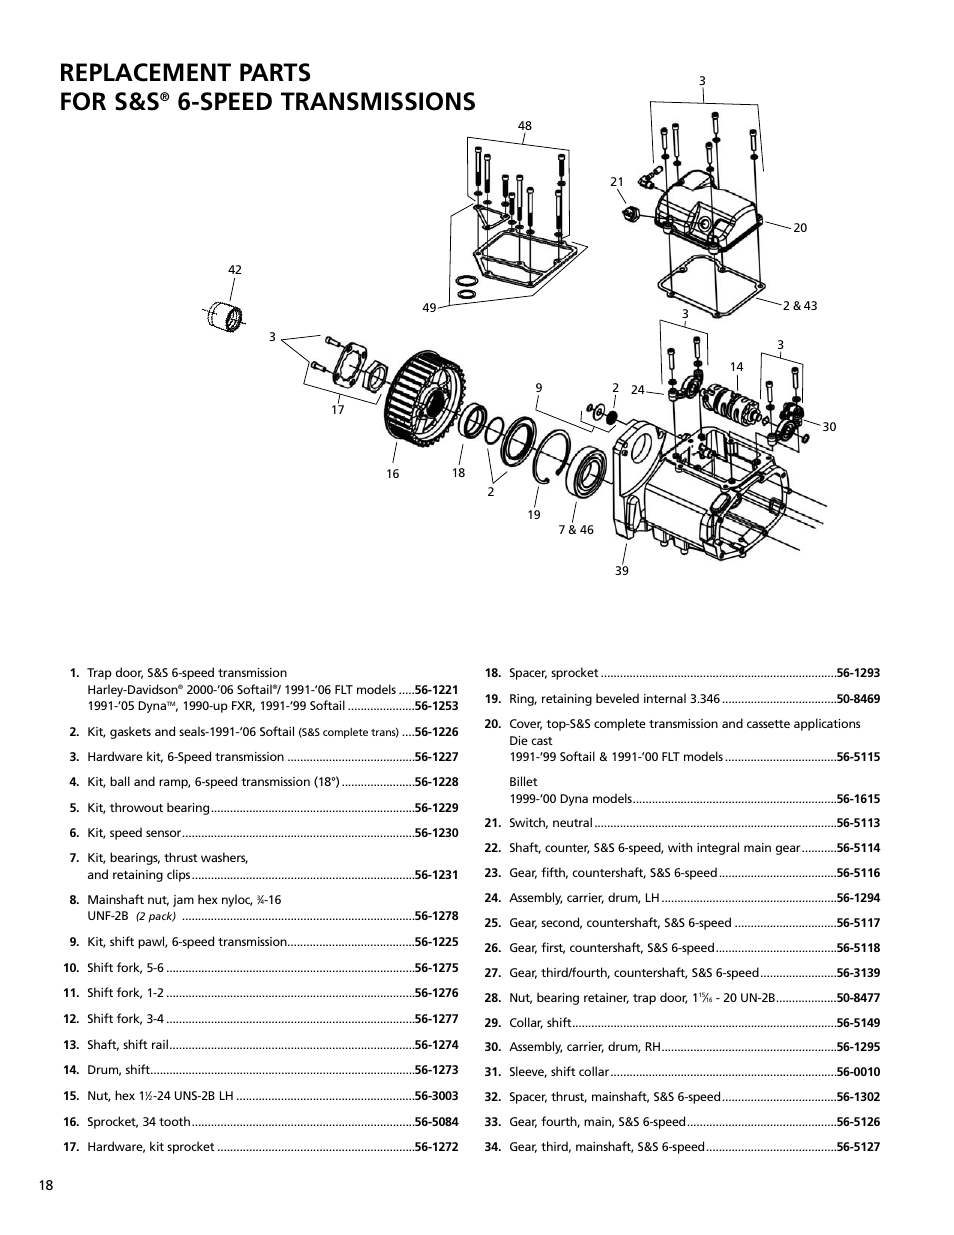 harley davidson transmission diagram harley davidson engine diagram replacement parts for s&s, speed transmissions | s&s cycle ... #4